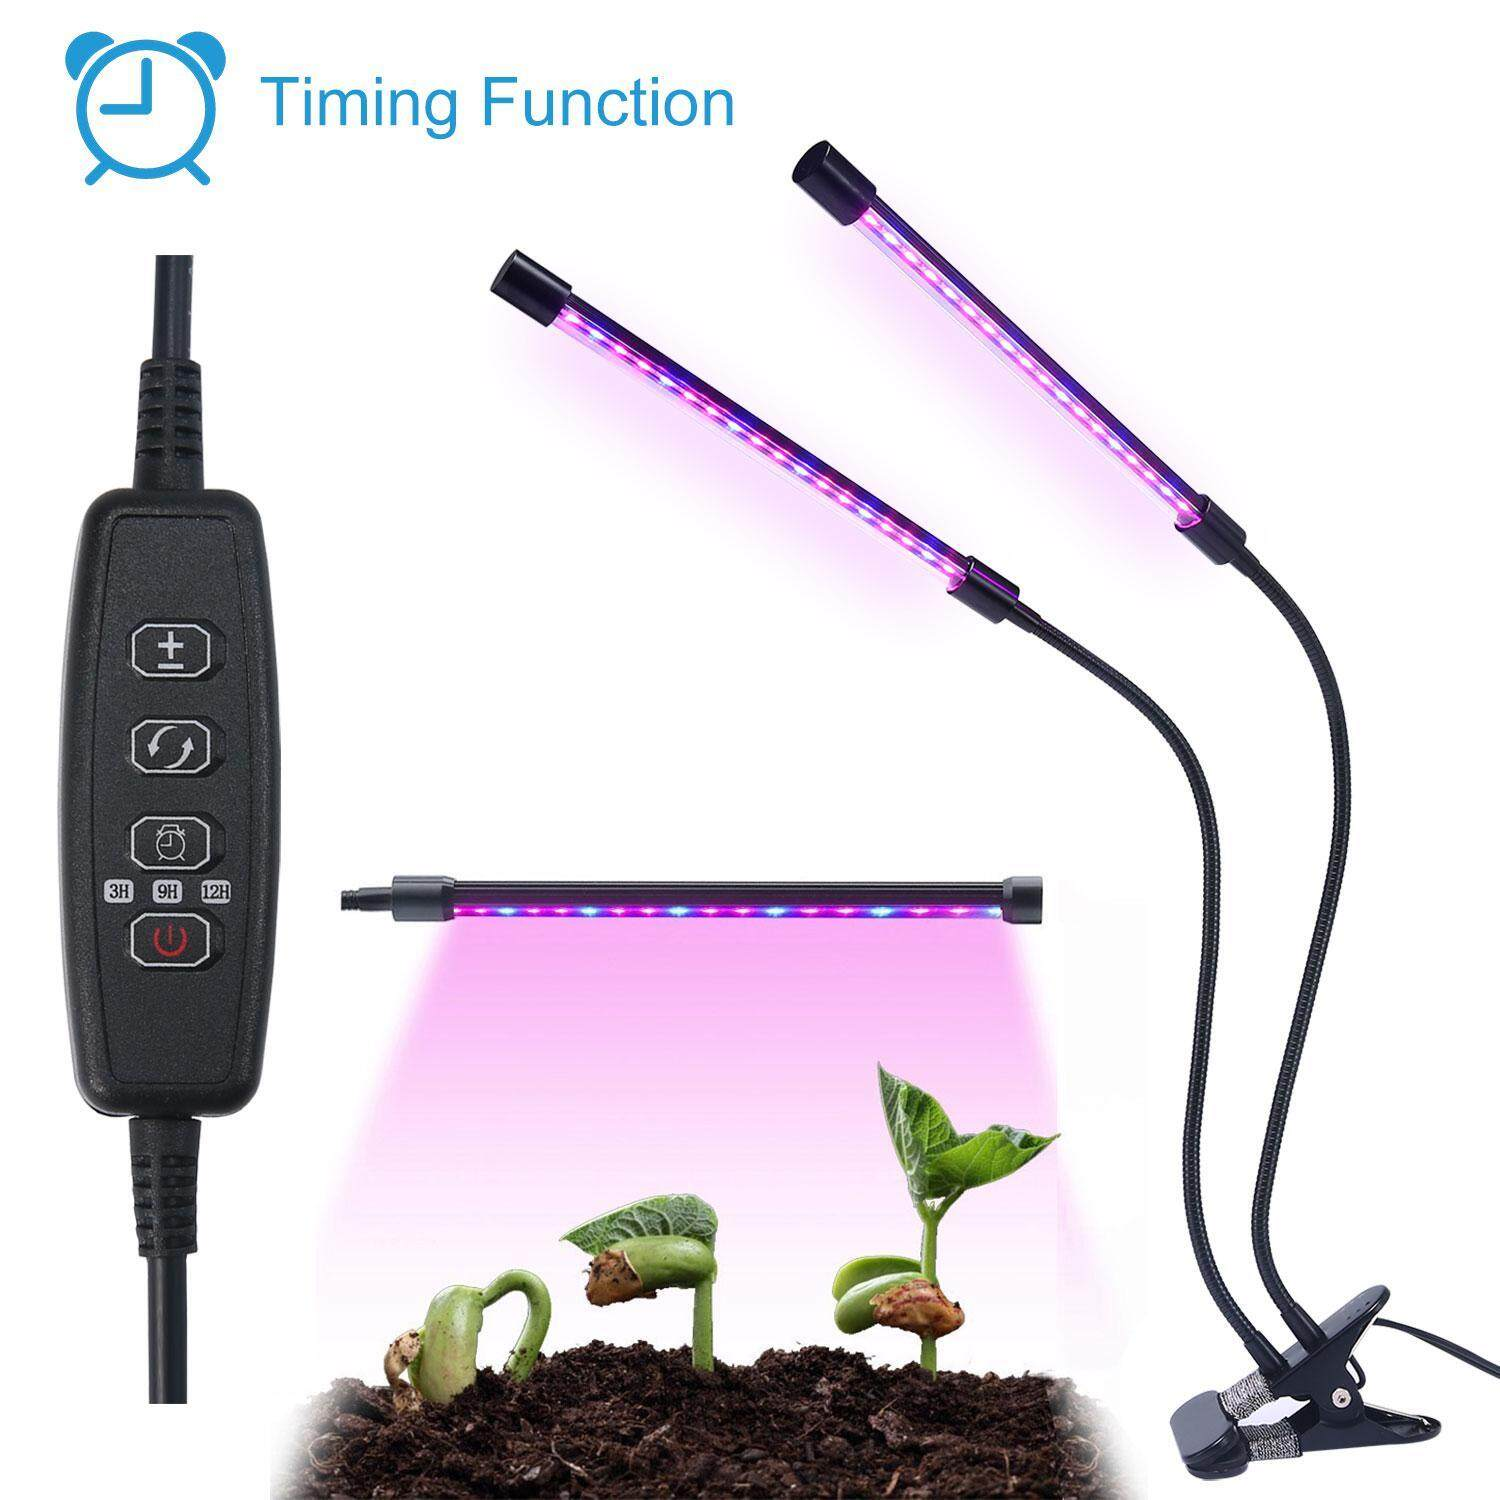 HOSdog Timing Function Dual Head Grow Light, 36 LEDs Grow Lamp Bulb, 360° Flexible, 3/6/12H Timer, Indoor Plants Hydroponics Greenhouse Gardening Plant - intl